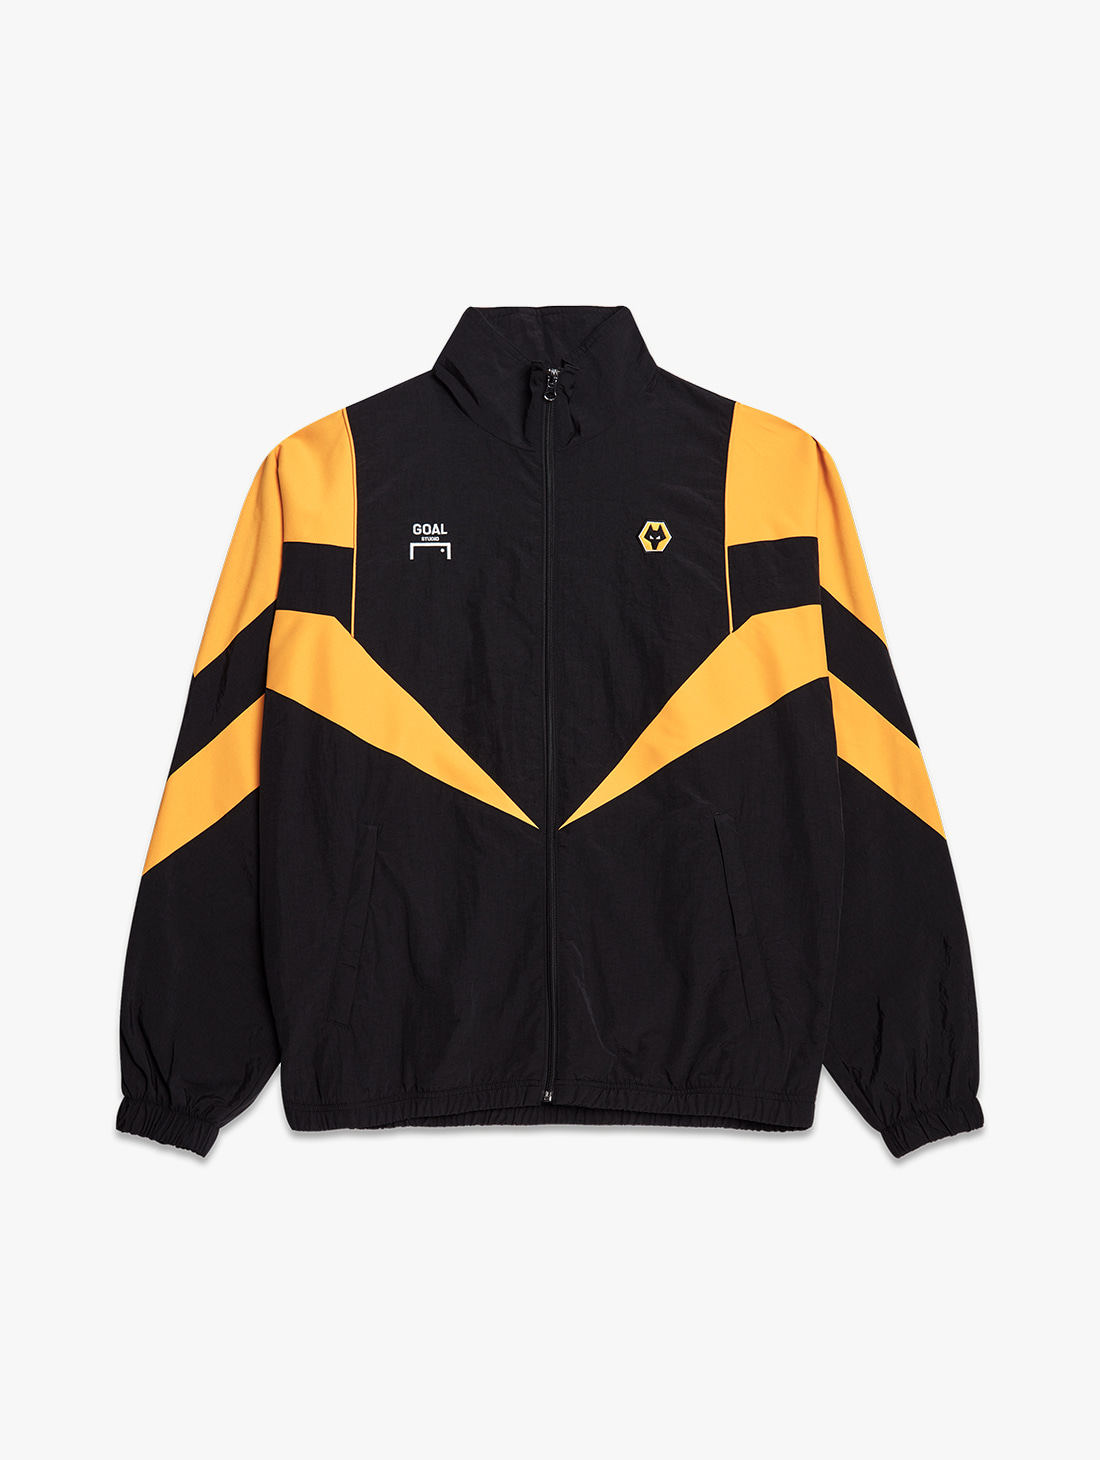 [PRE-ORDER 10% OFF] WWFC TRACK ZIP-UP JACKET (2 Colors)